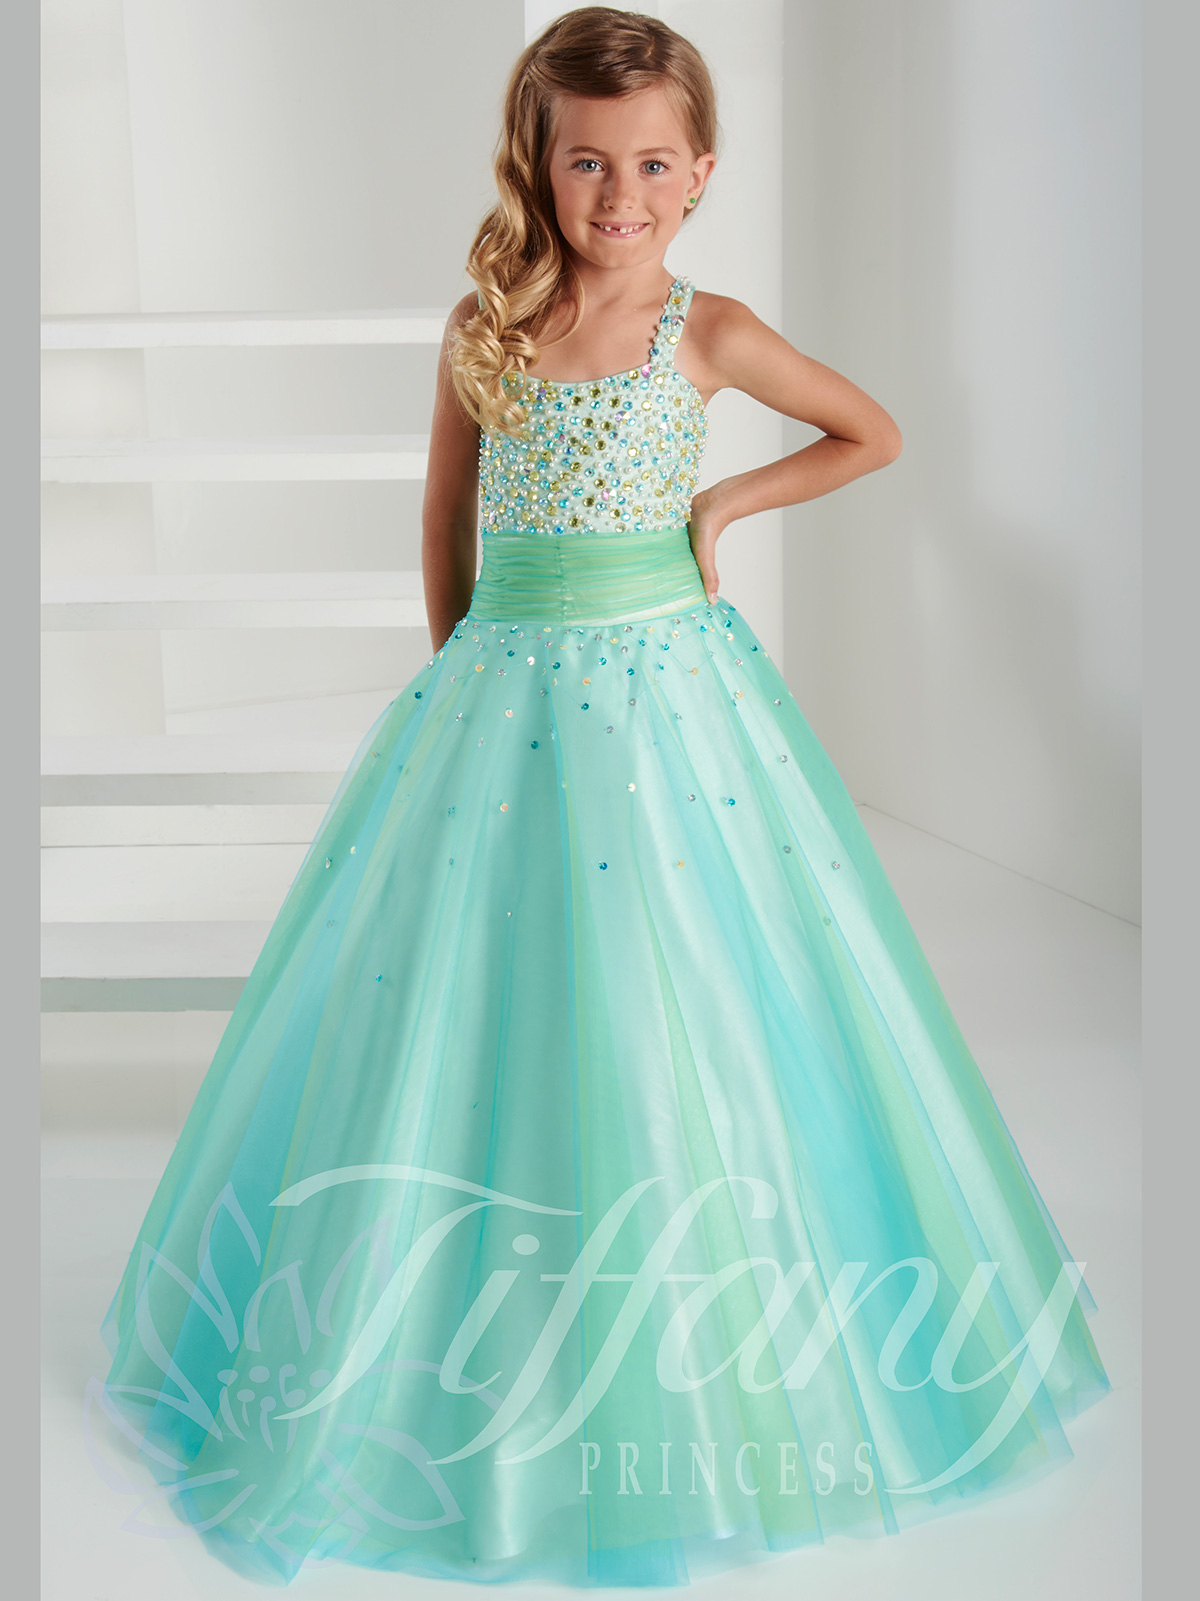 Tiffany Princess Beaded Bodice Pageant Gown 13405|PageantDesigns.com